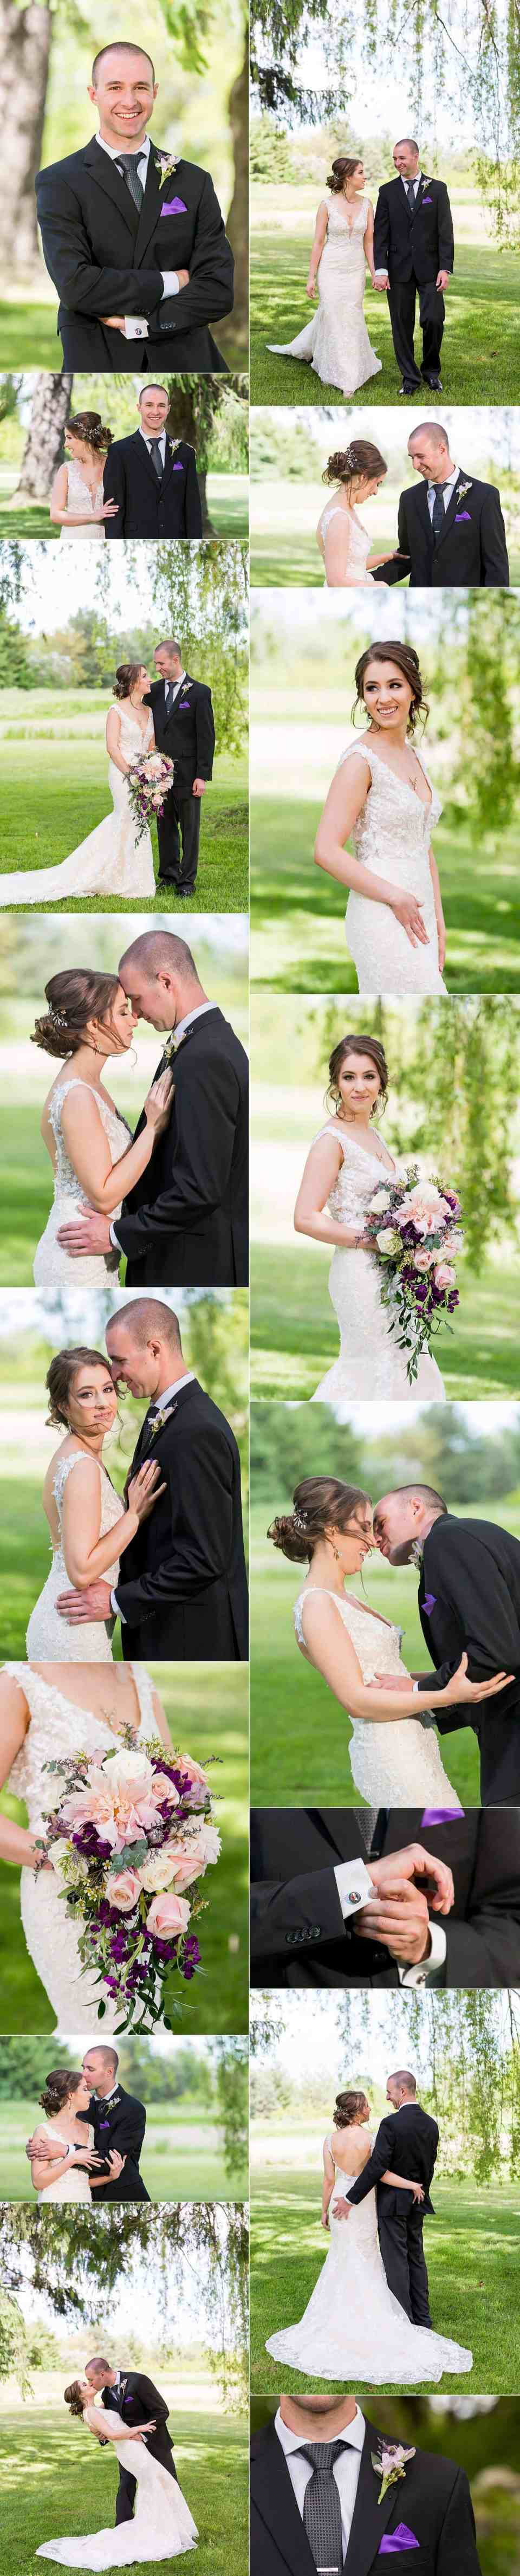 Outdoor Wisconsin Wedding by Willow Trees